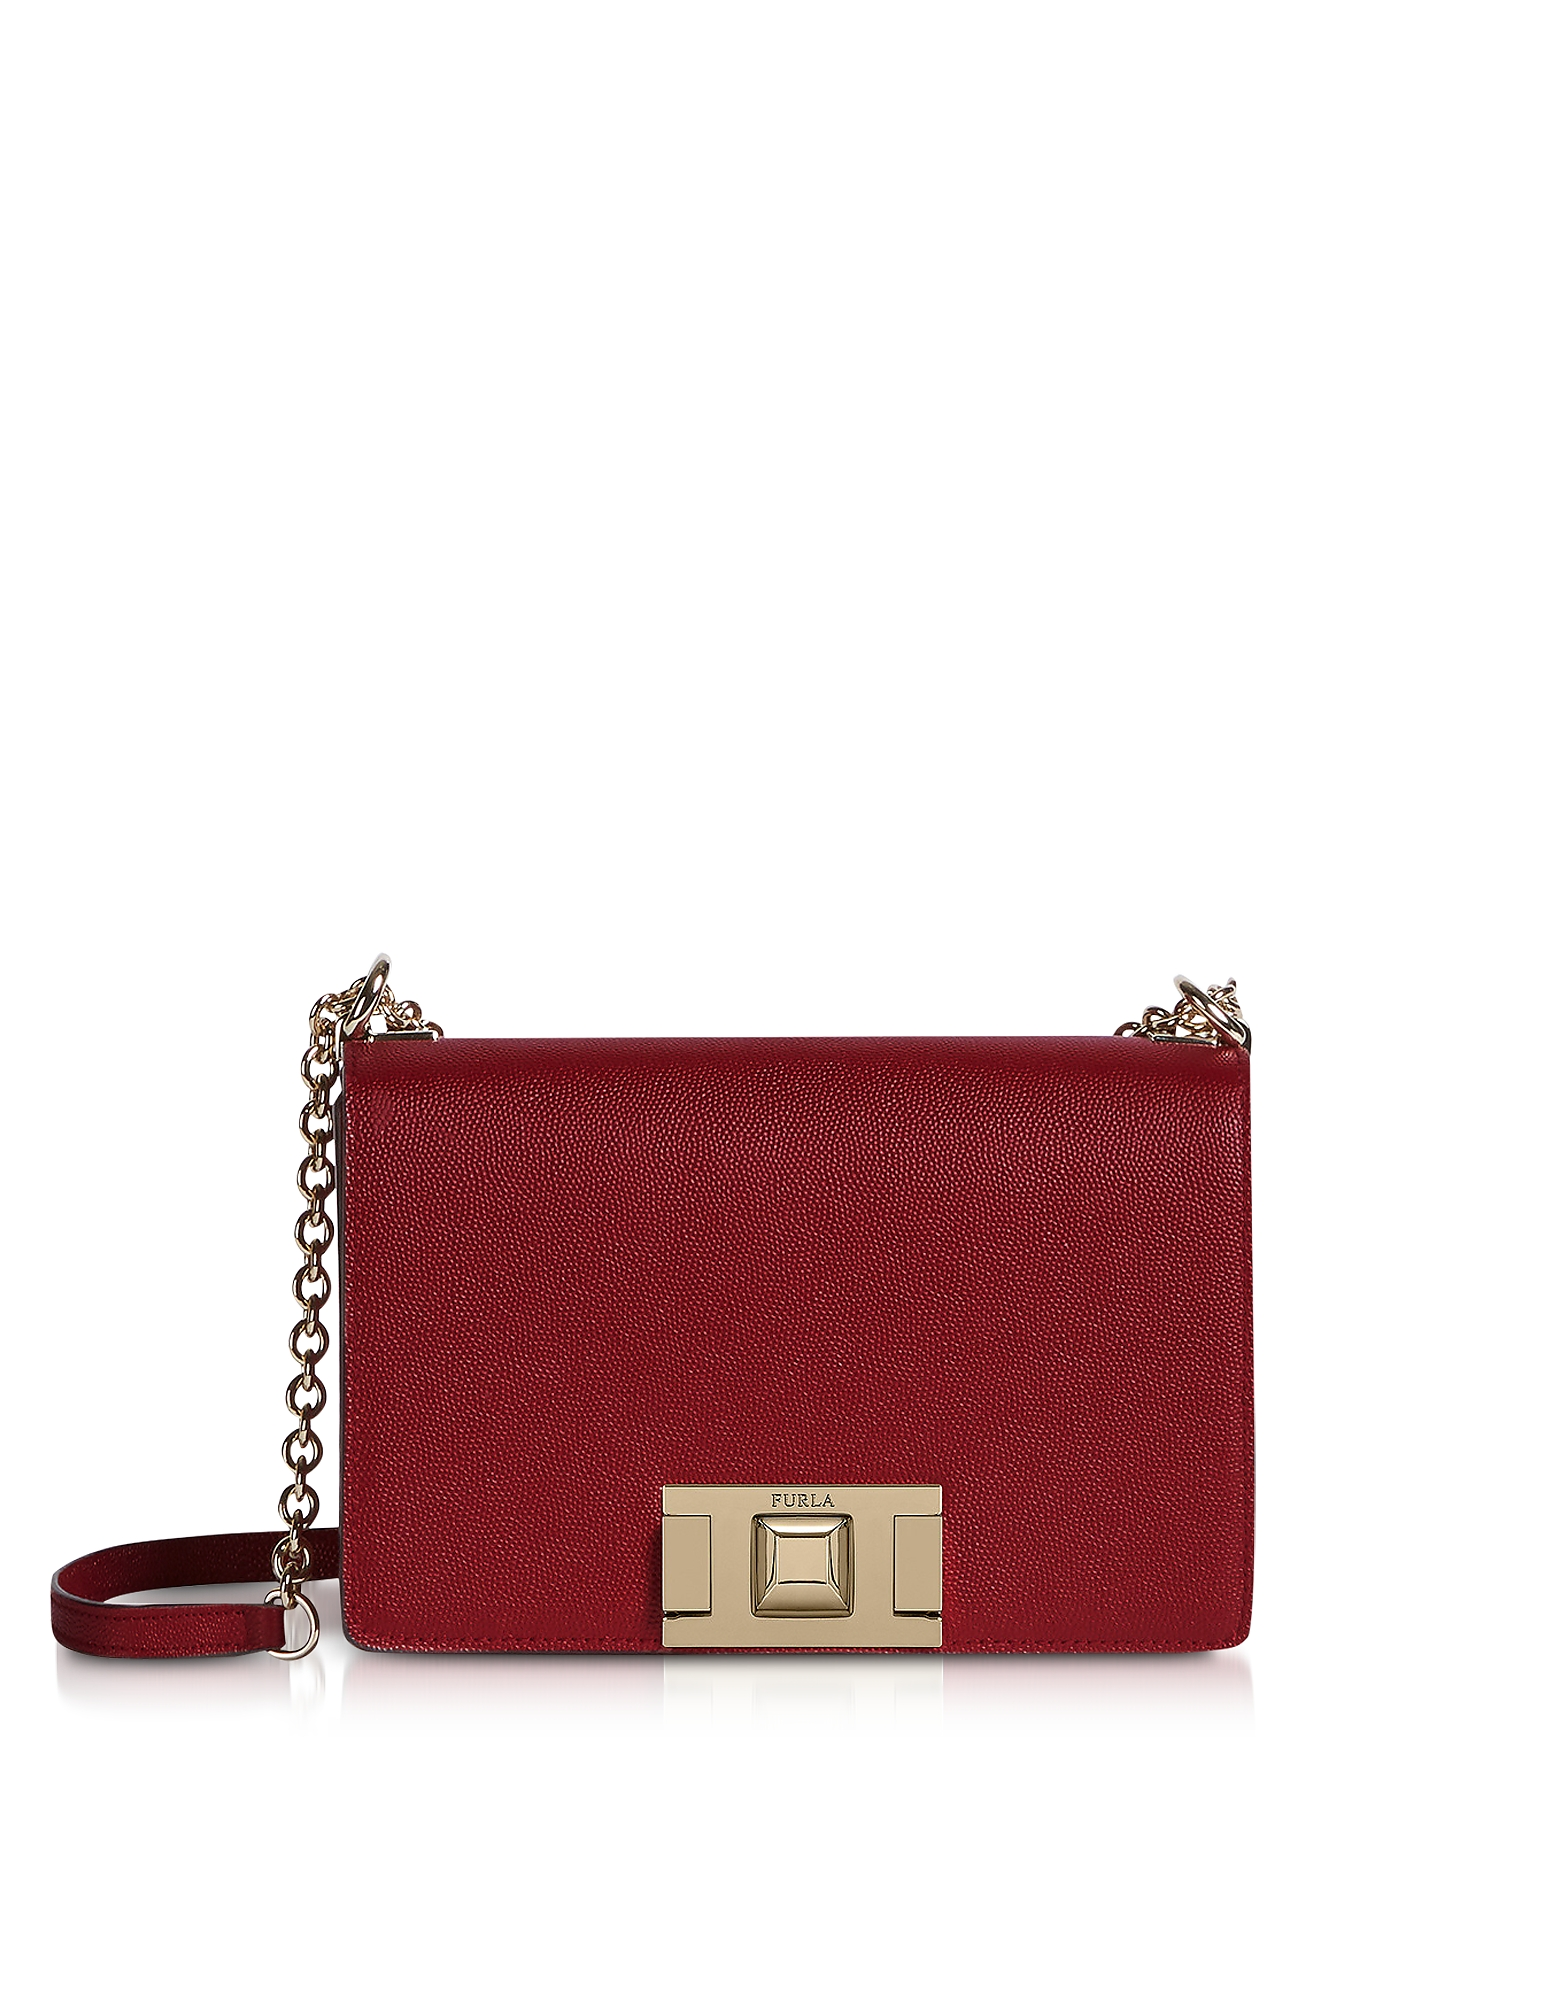 Furla Designer Handbags, Mimì Mini Crossbody Bag